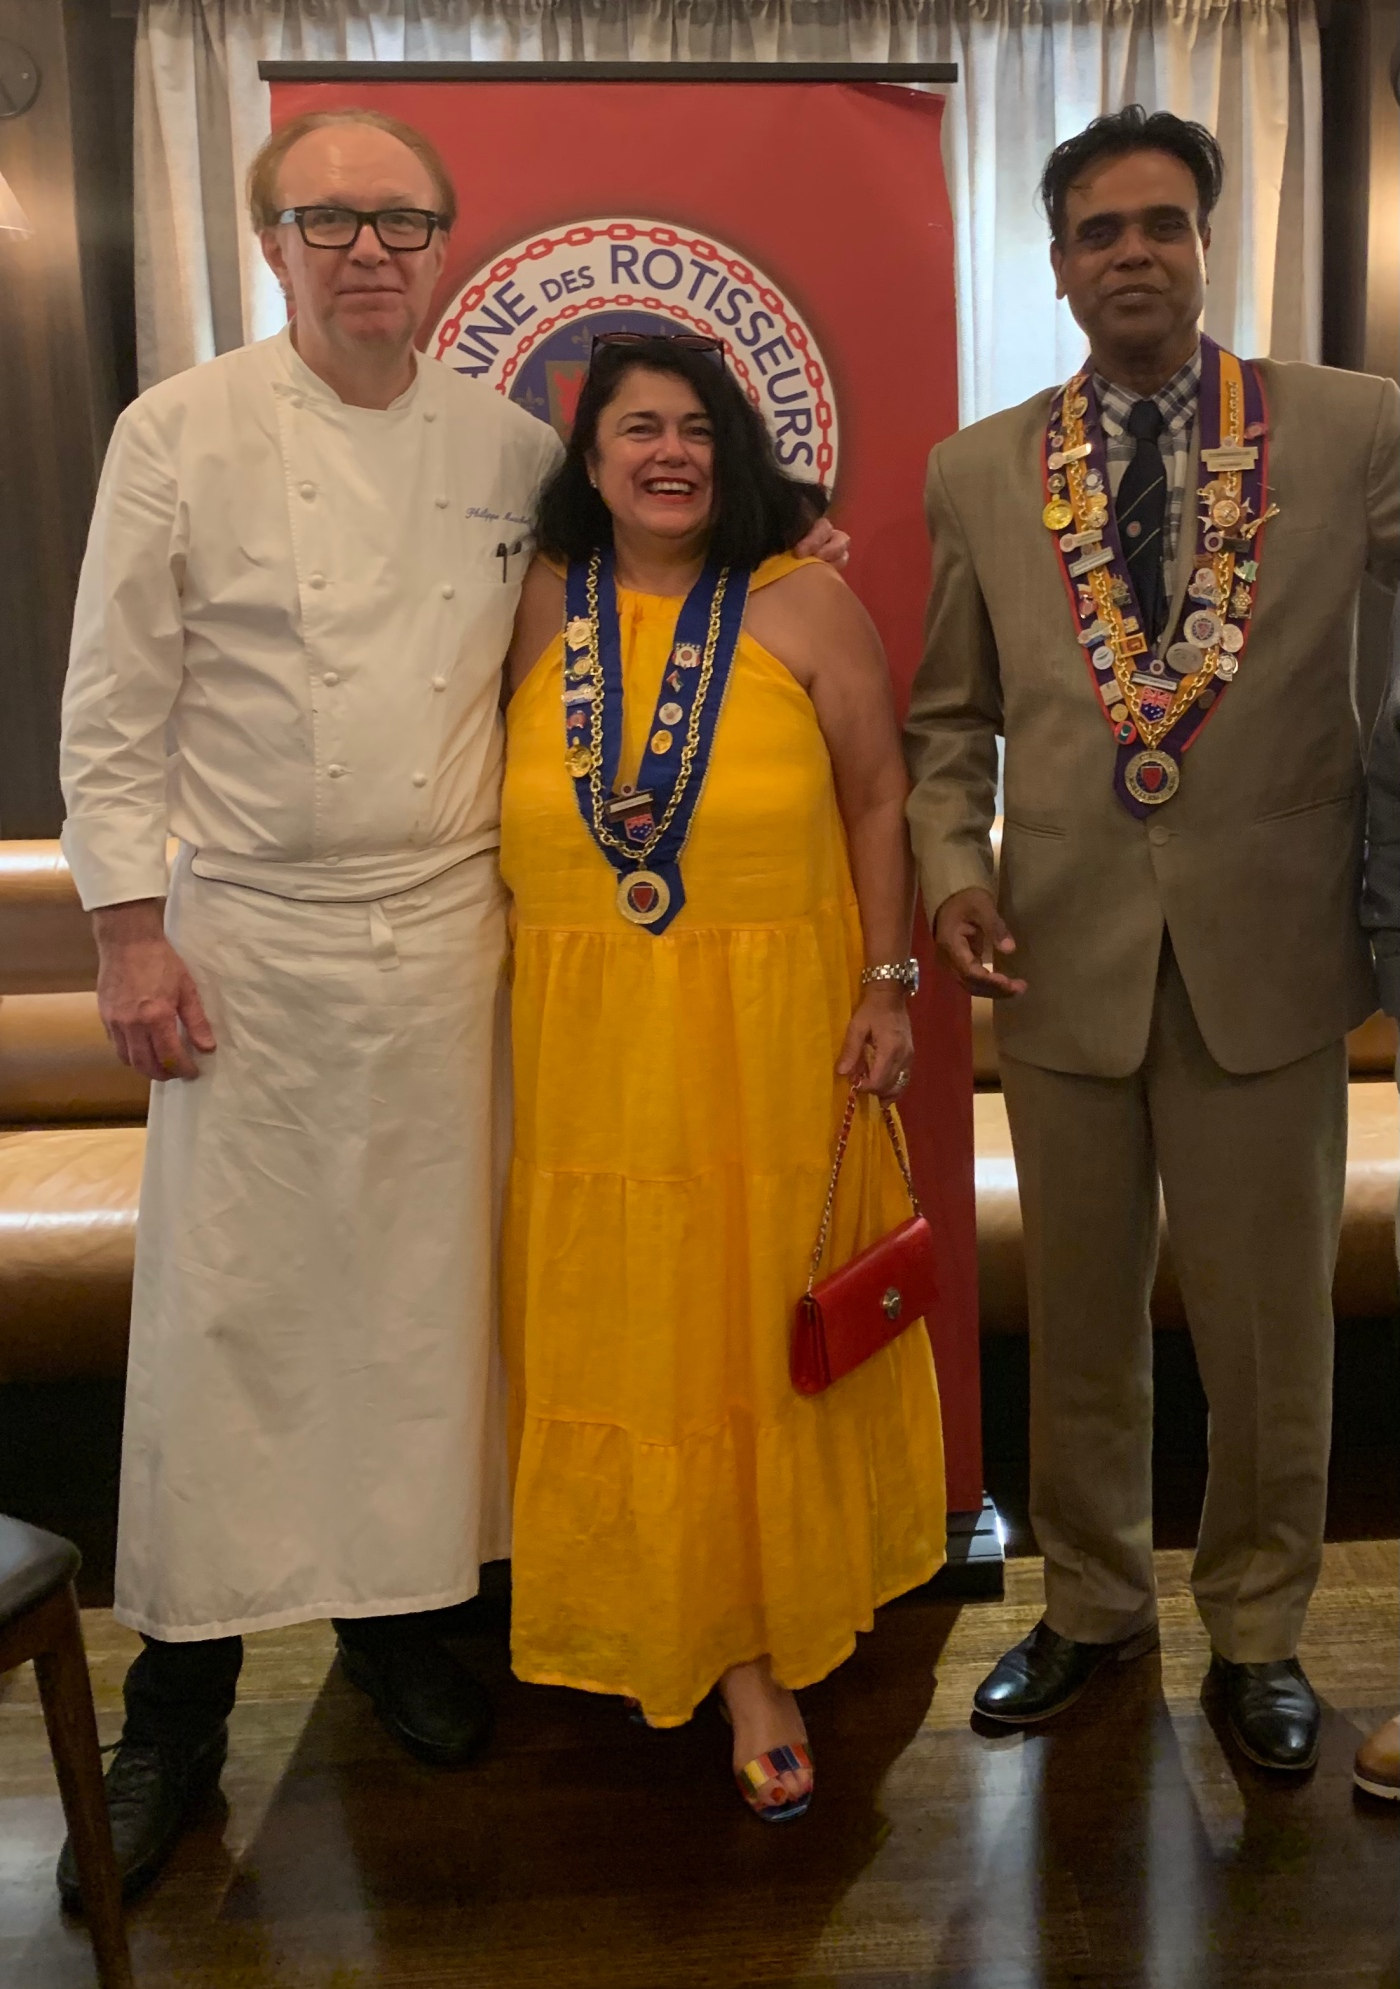 L to R, Philippe Mouchel - Executive Chef & Owner , Petra Harmer-Shrowder - National Chargee de Presse La Chaine des Rotisseurs, Daman Shrivistav, Vice Conceille de Gatronomique - La Chaine des Rotisseurs